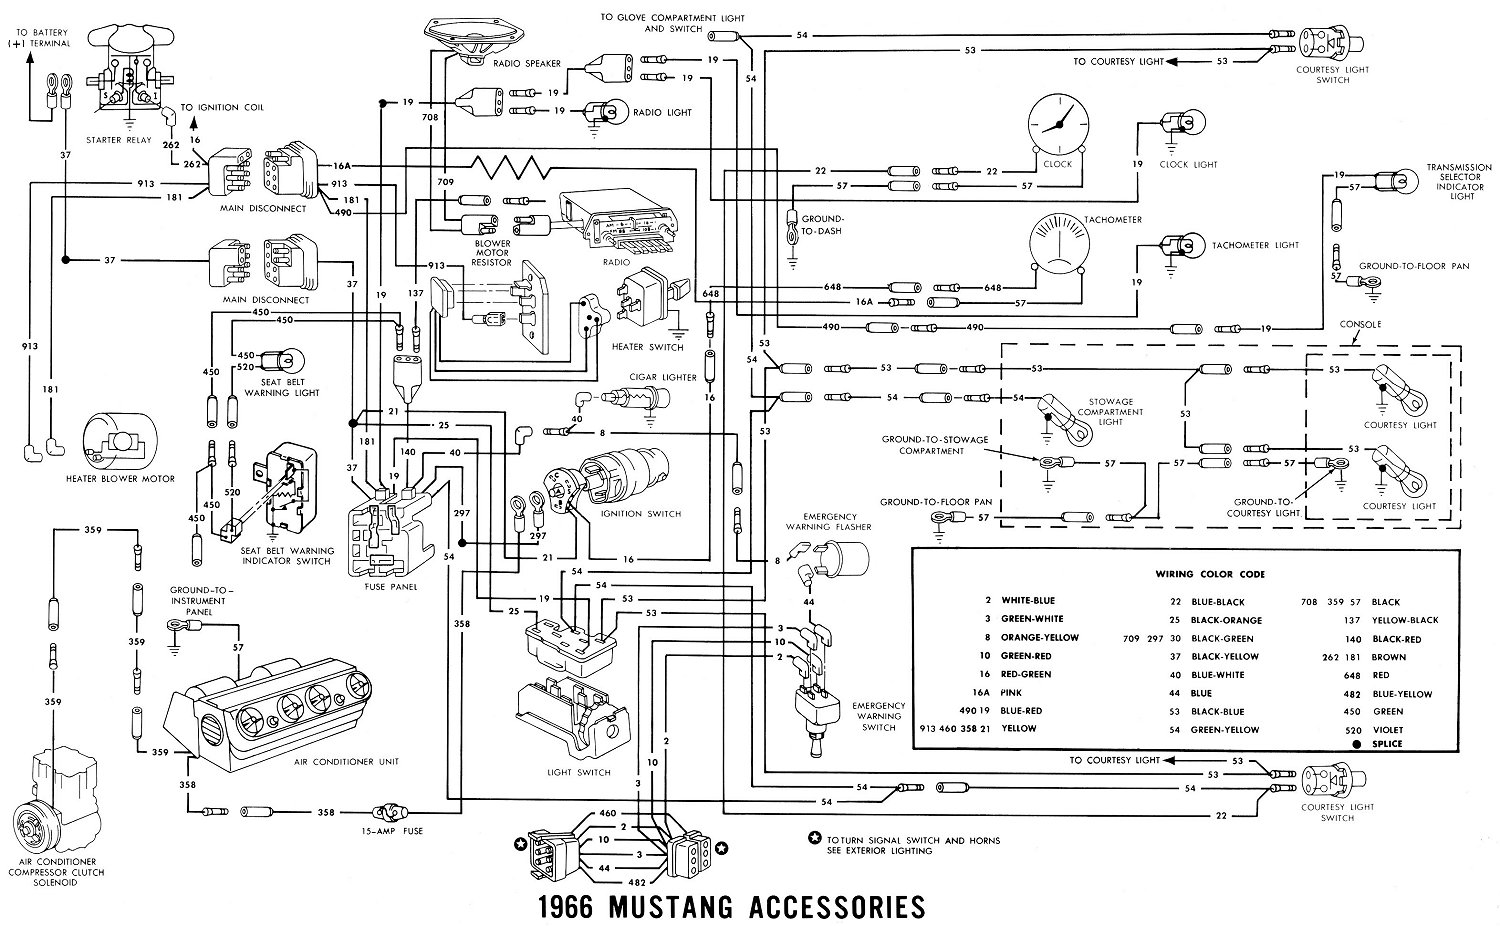 1971 Mach 1 Engine Wiring Harness - Most Exciting Wiring Diagram Mach Amp Wiring Harness on maxi-seal harness, pet harness, amp bypass harness, suspension harness, radio harness, battery harness, pony harness, cable harness, nakamichi harness, electrical harness, oxygen sensor extension harness, fall protection harness, dog harness, safety harness, alpine stereo harness, engine harness, obd0 to obd1 conversion harness,